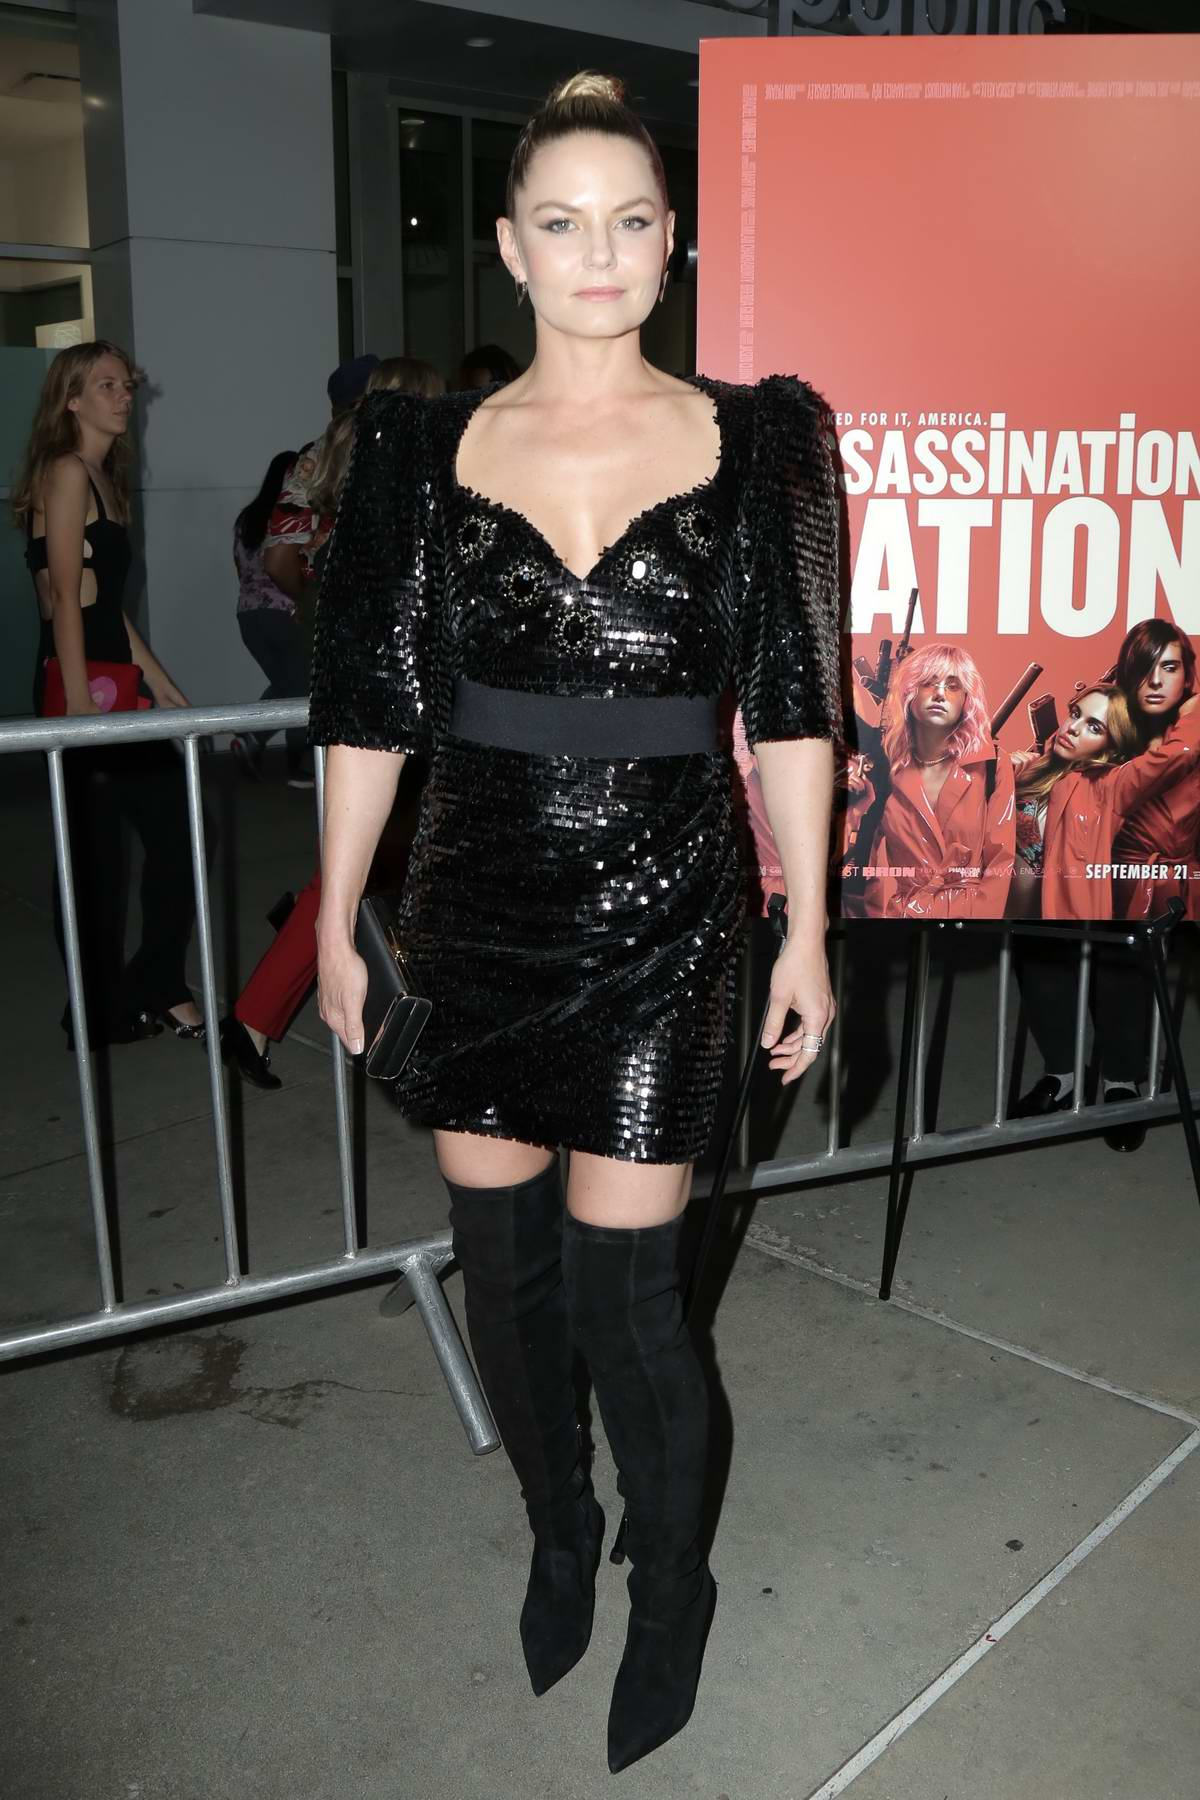 Jennifer Morrison attends 'Assassination Nation' film premiere at ArcLight Hollywood in Hollywood, Los Angeles